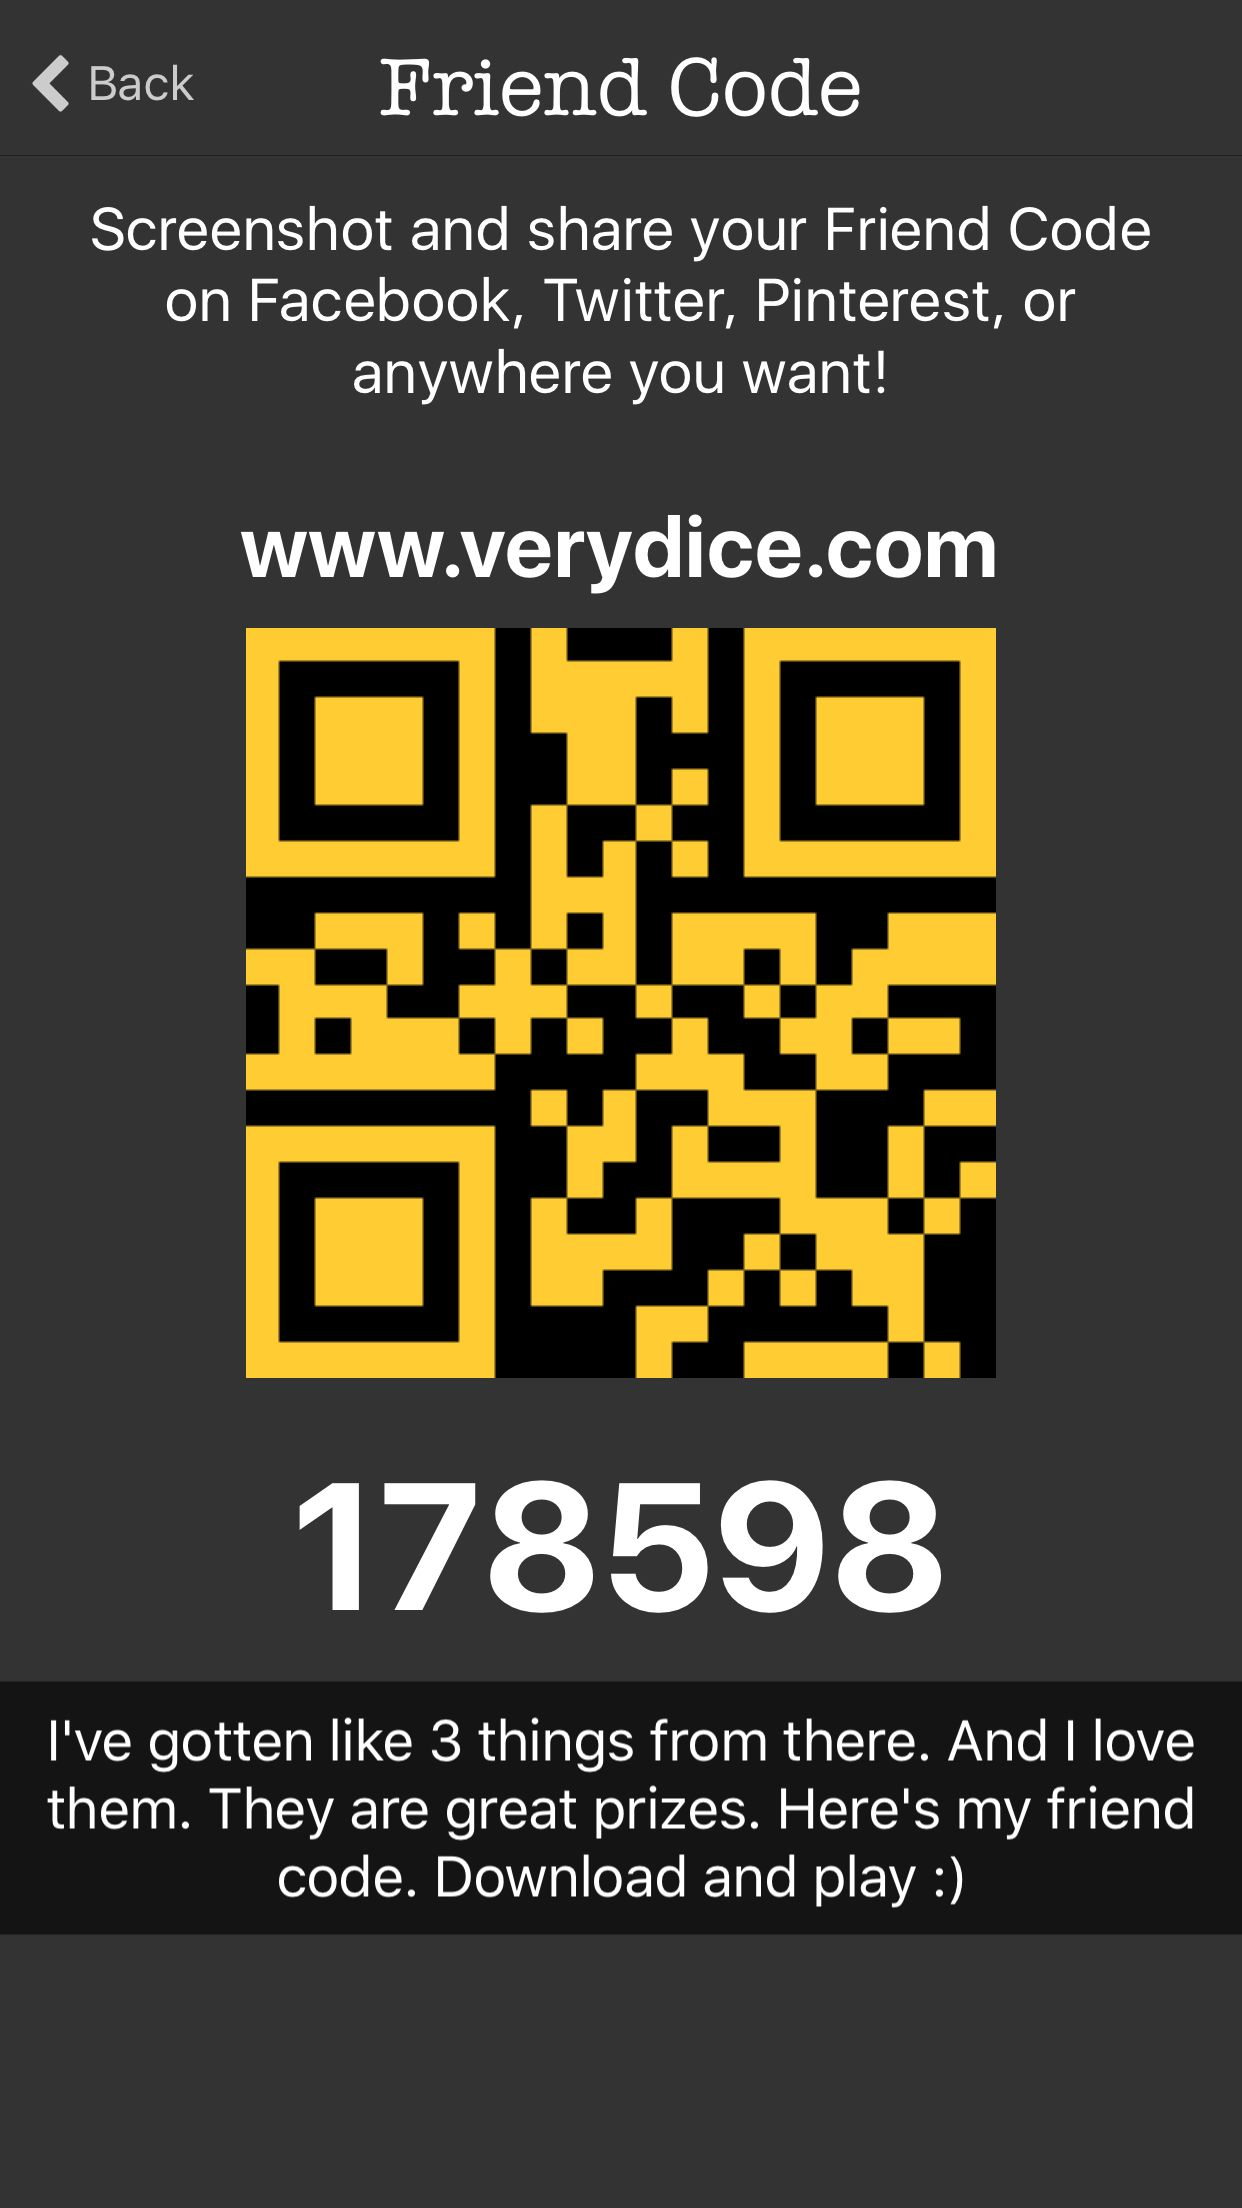 Freeeeee so theres this new app called verydice and all